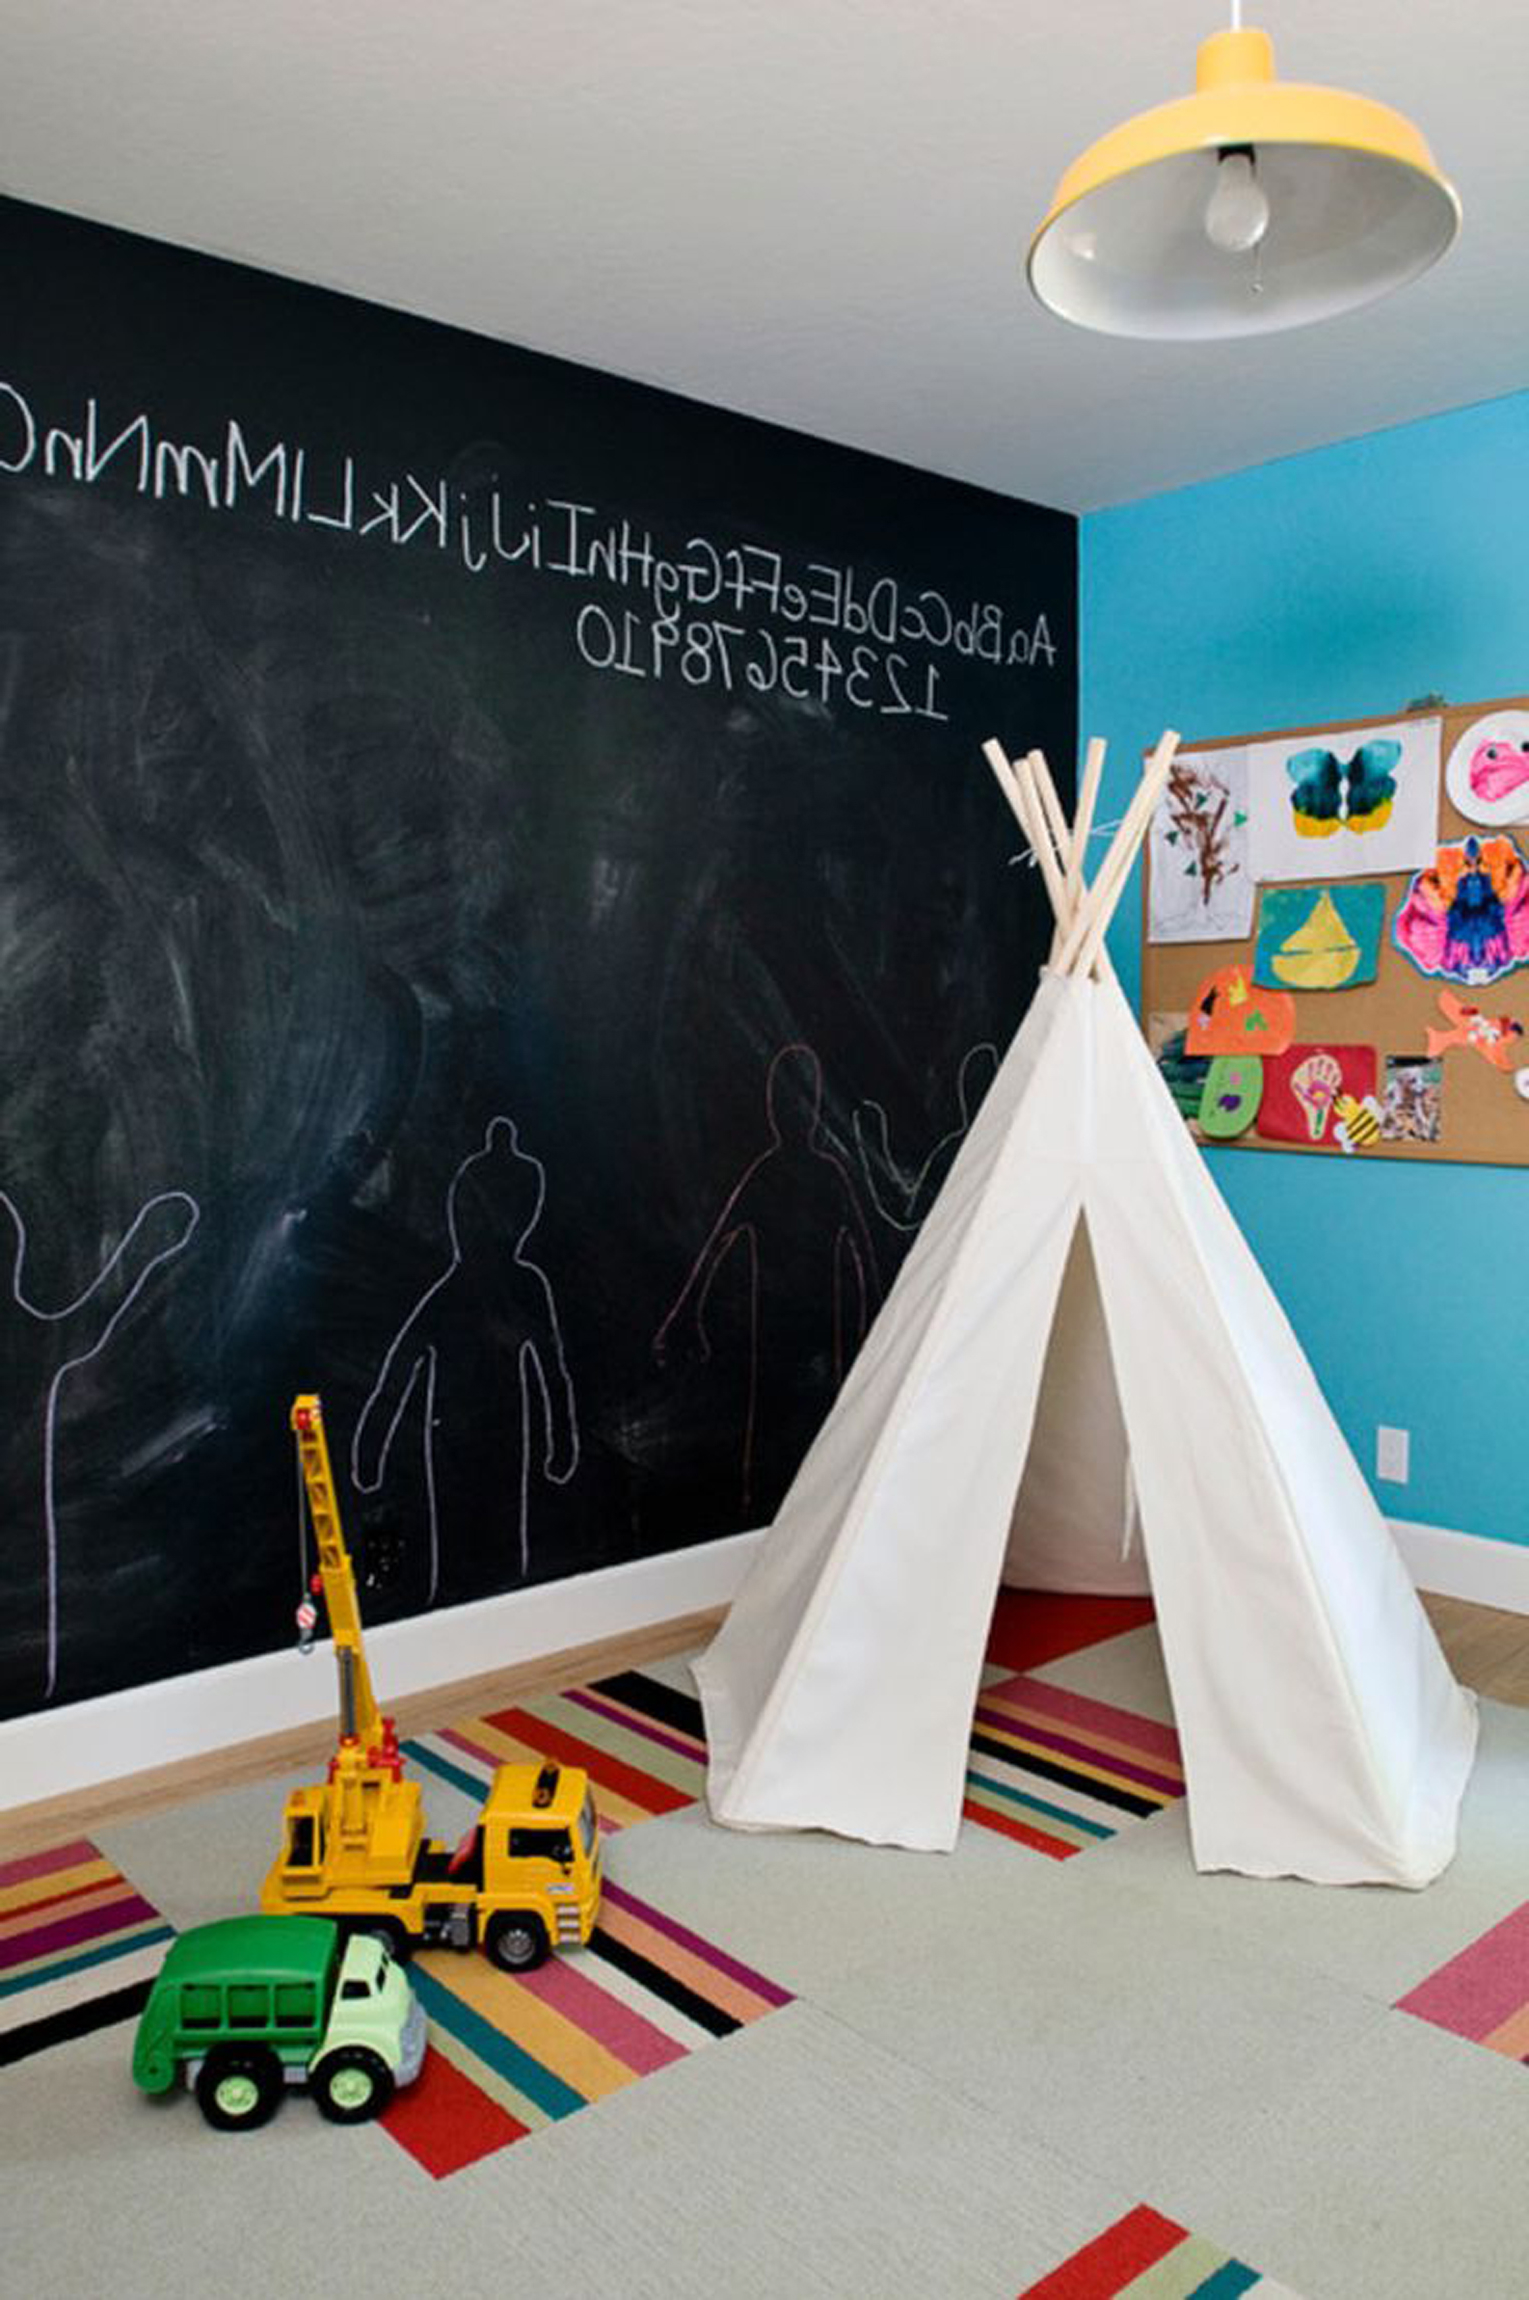 Kids Room Ideas With Cute White Kids Tent Ideas And Entrancing Chalkboar Wall Decoration Featuring Amusing Bright Blue Wall Colors And Artsy Retro Hanging Lamp Model (Image 27 of 28)